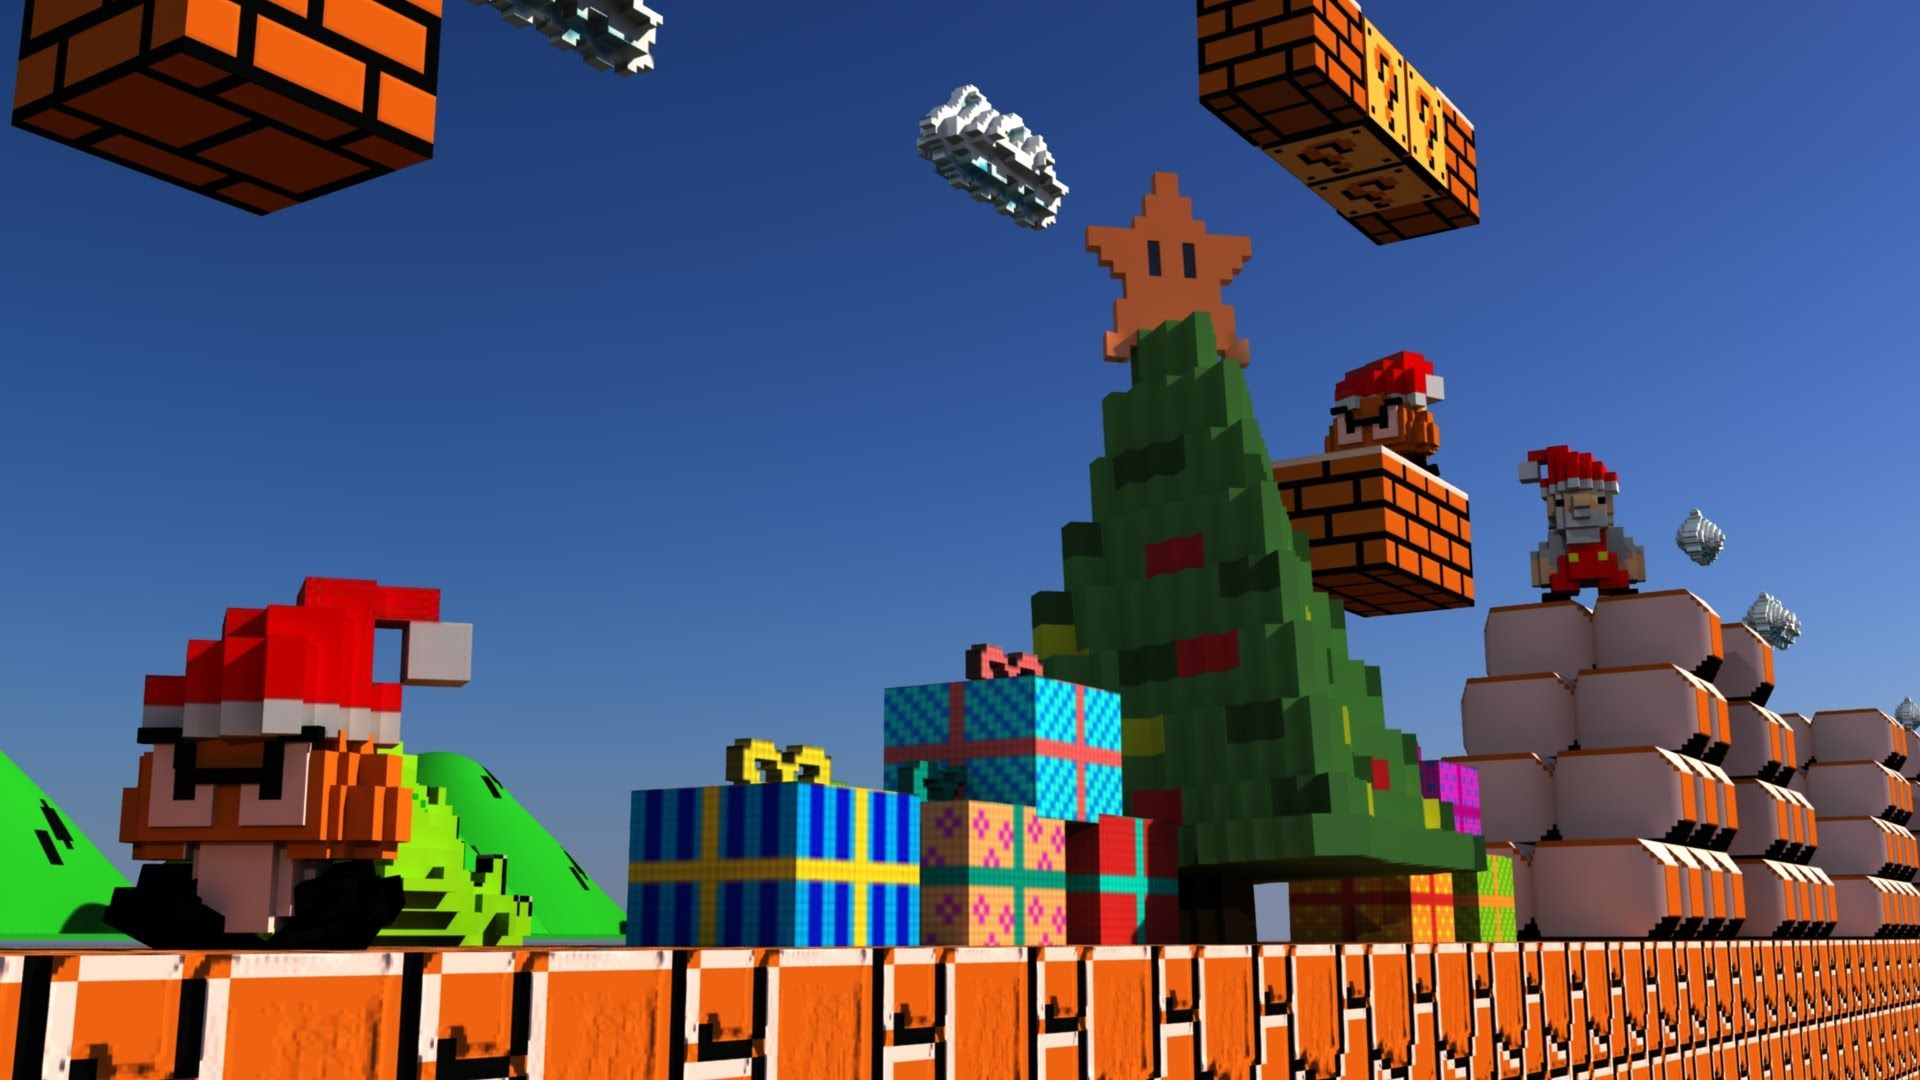 1920x1080 Super Mario Bros 3D 360 VR – Merry Christmas and Happy New Year – 360AK